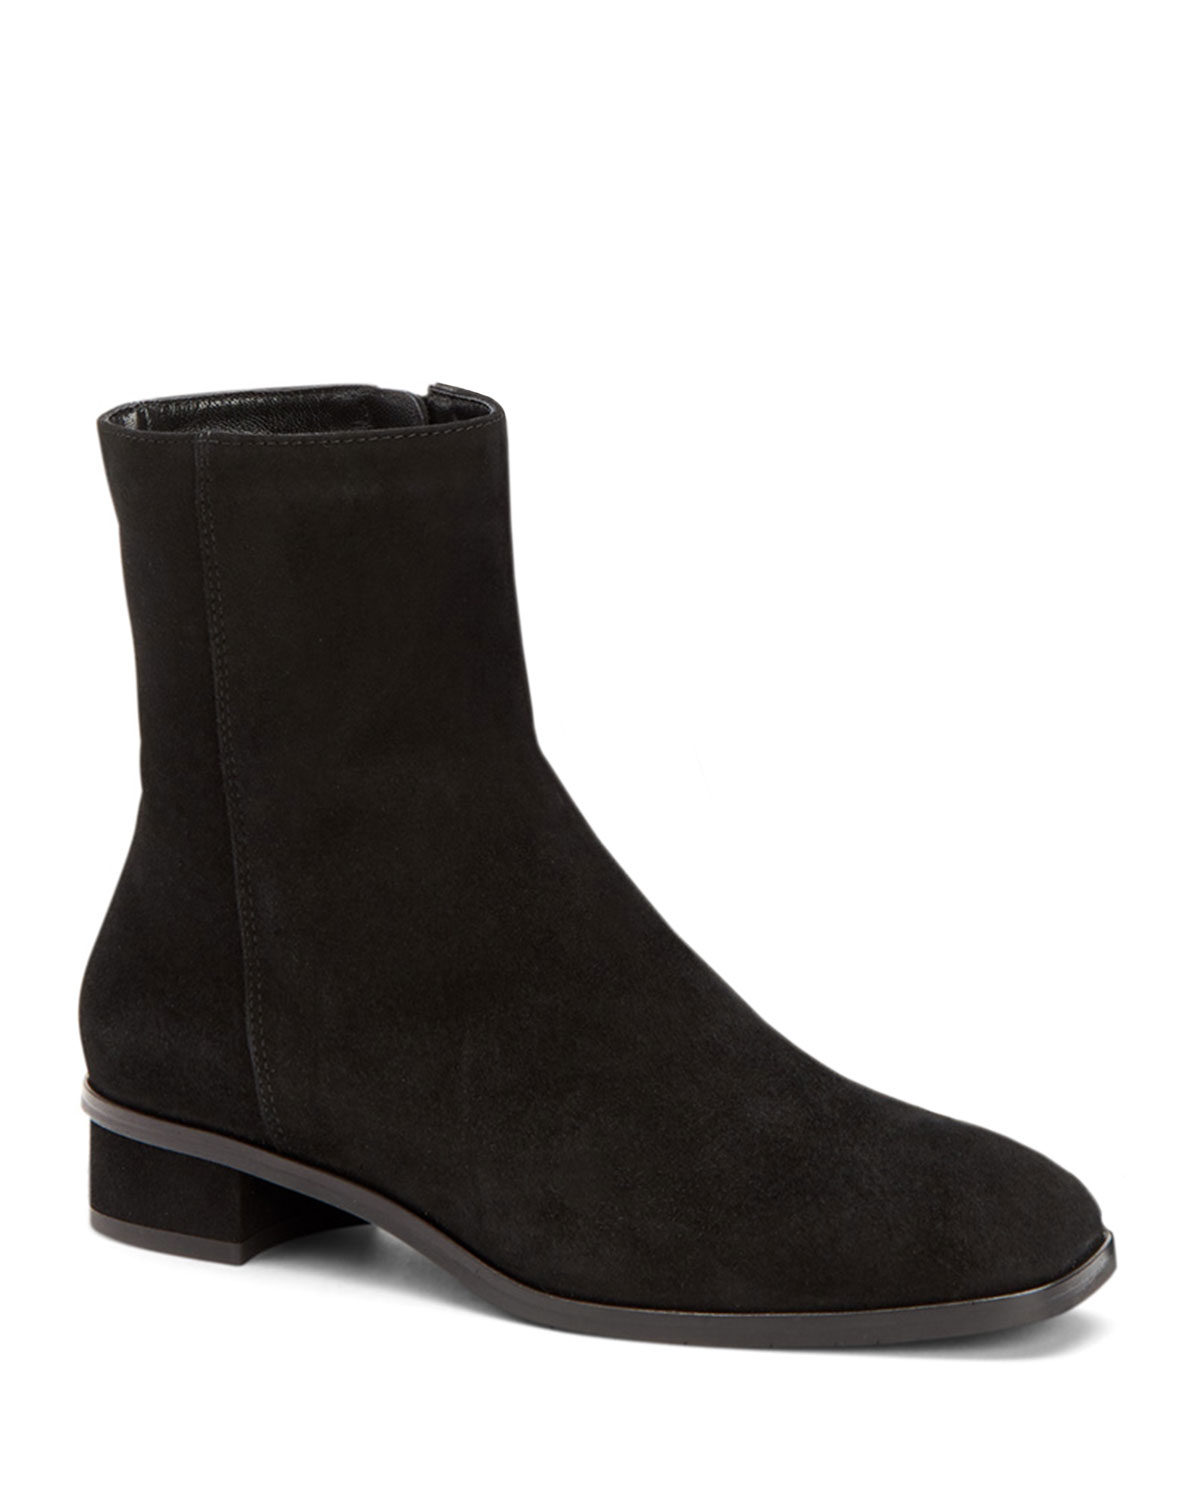 Lucie Suede Booties